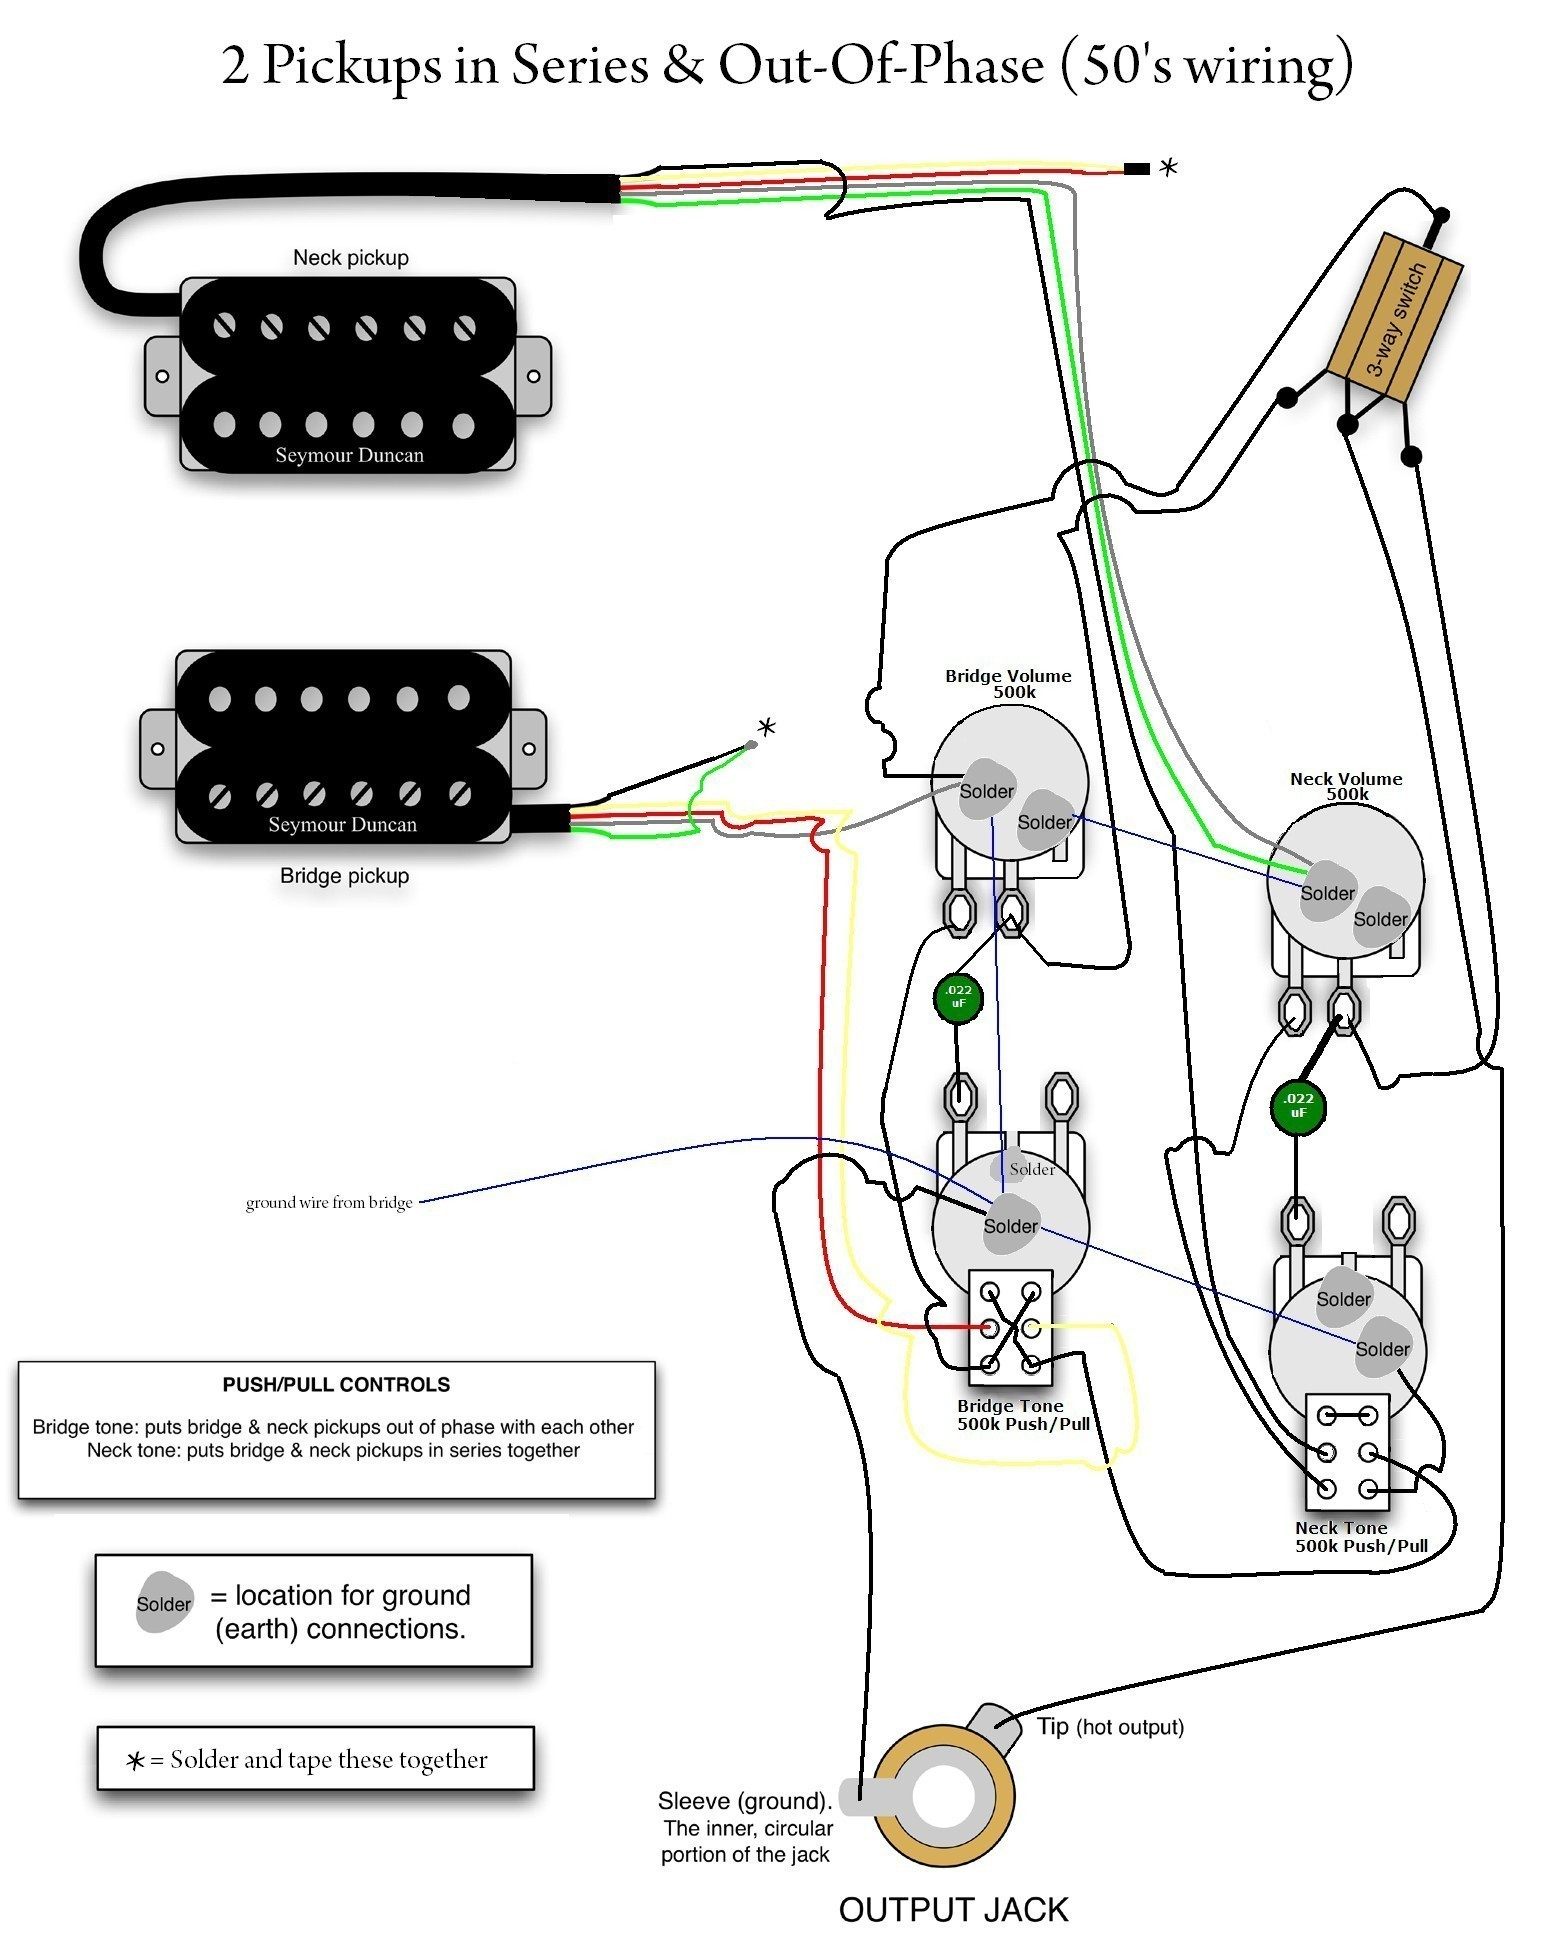 les paul coil tap wiring diagram collection. Black Bedroom Furniture Sets. Home Design Ideas